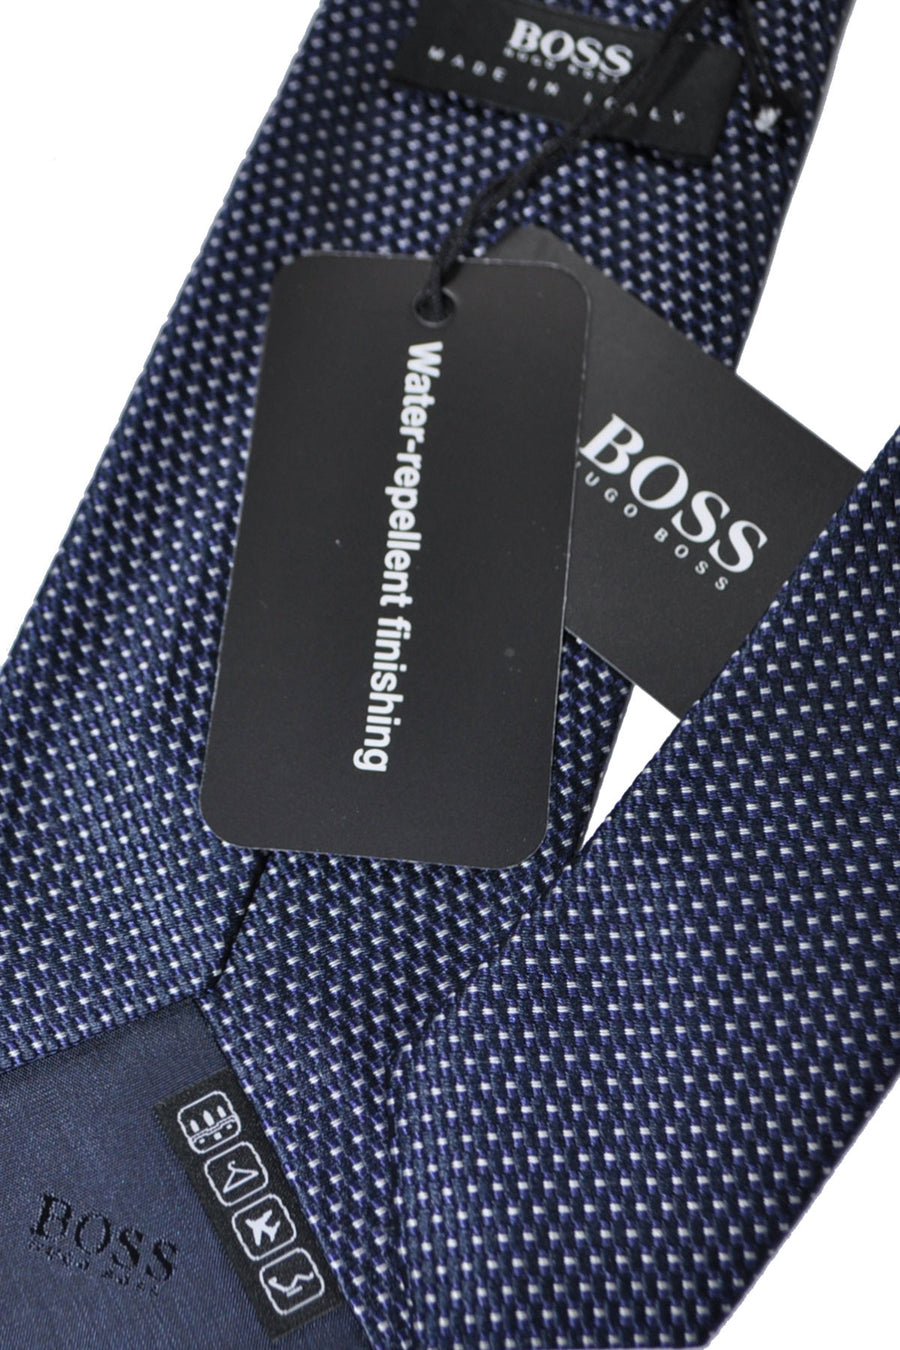 New Hugo Boss Silk Tie Navy Silver